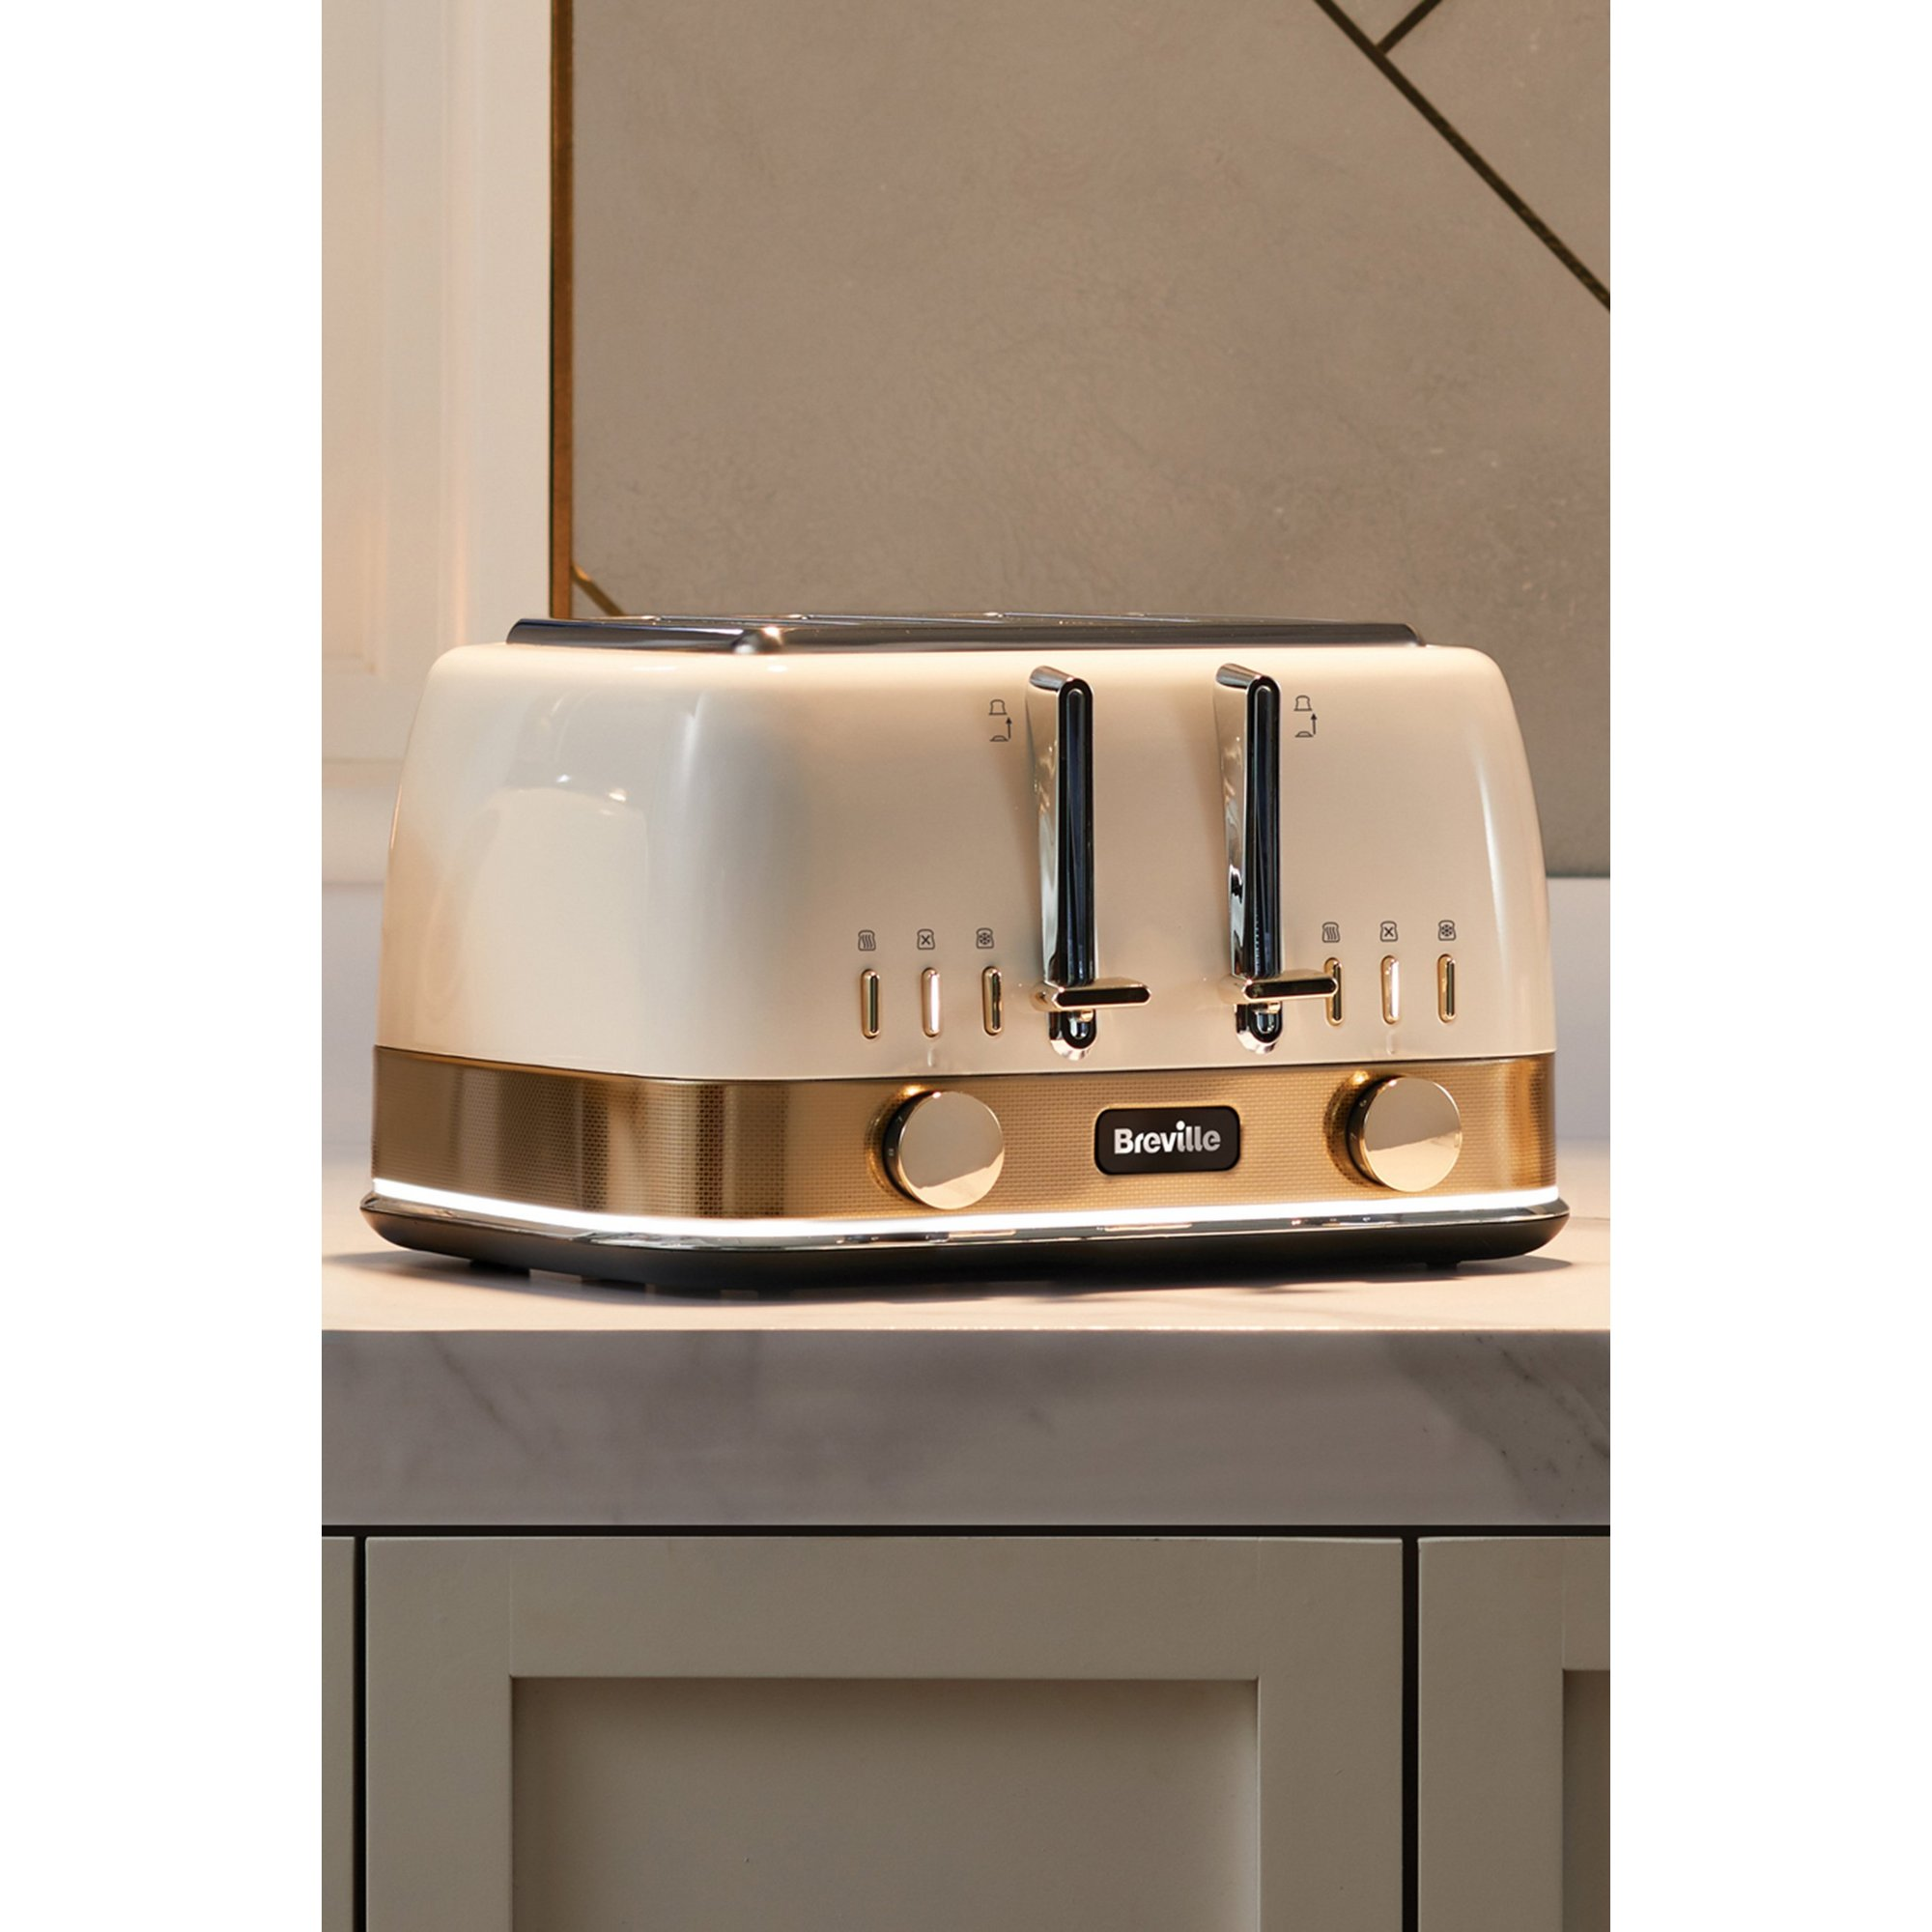 Image of Breville New York Collection 4 Slice Toaster